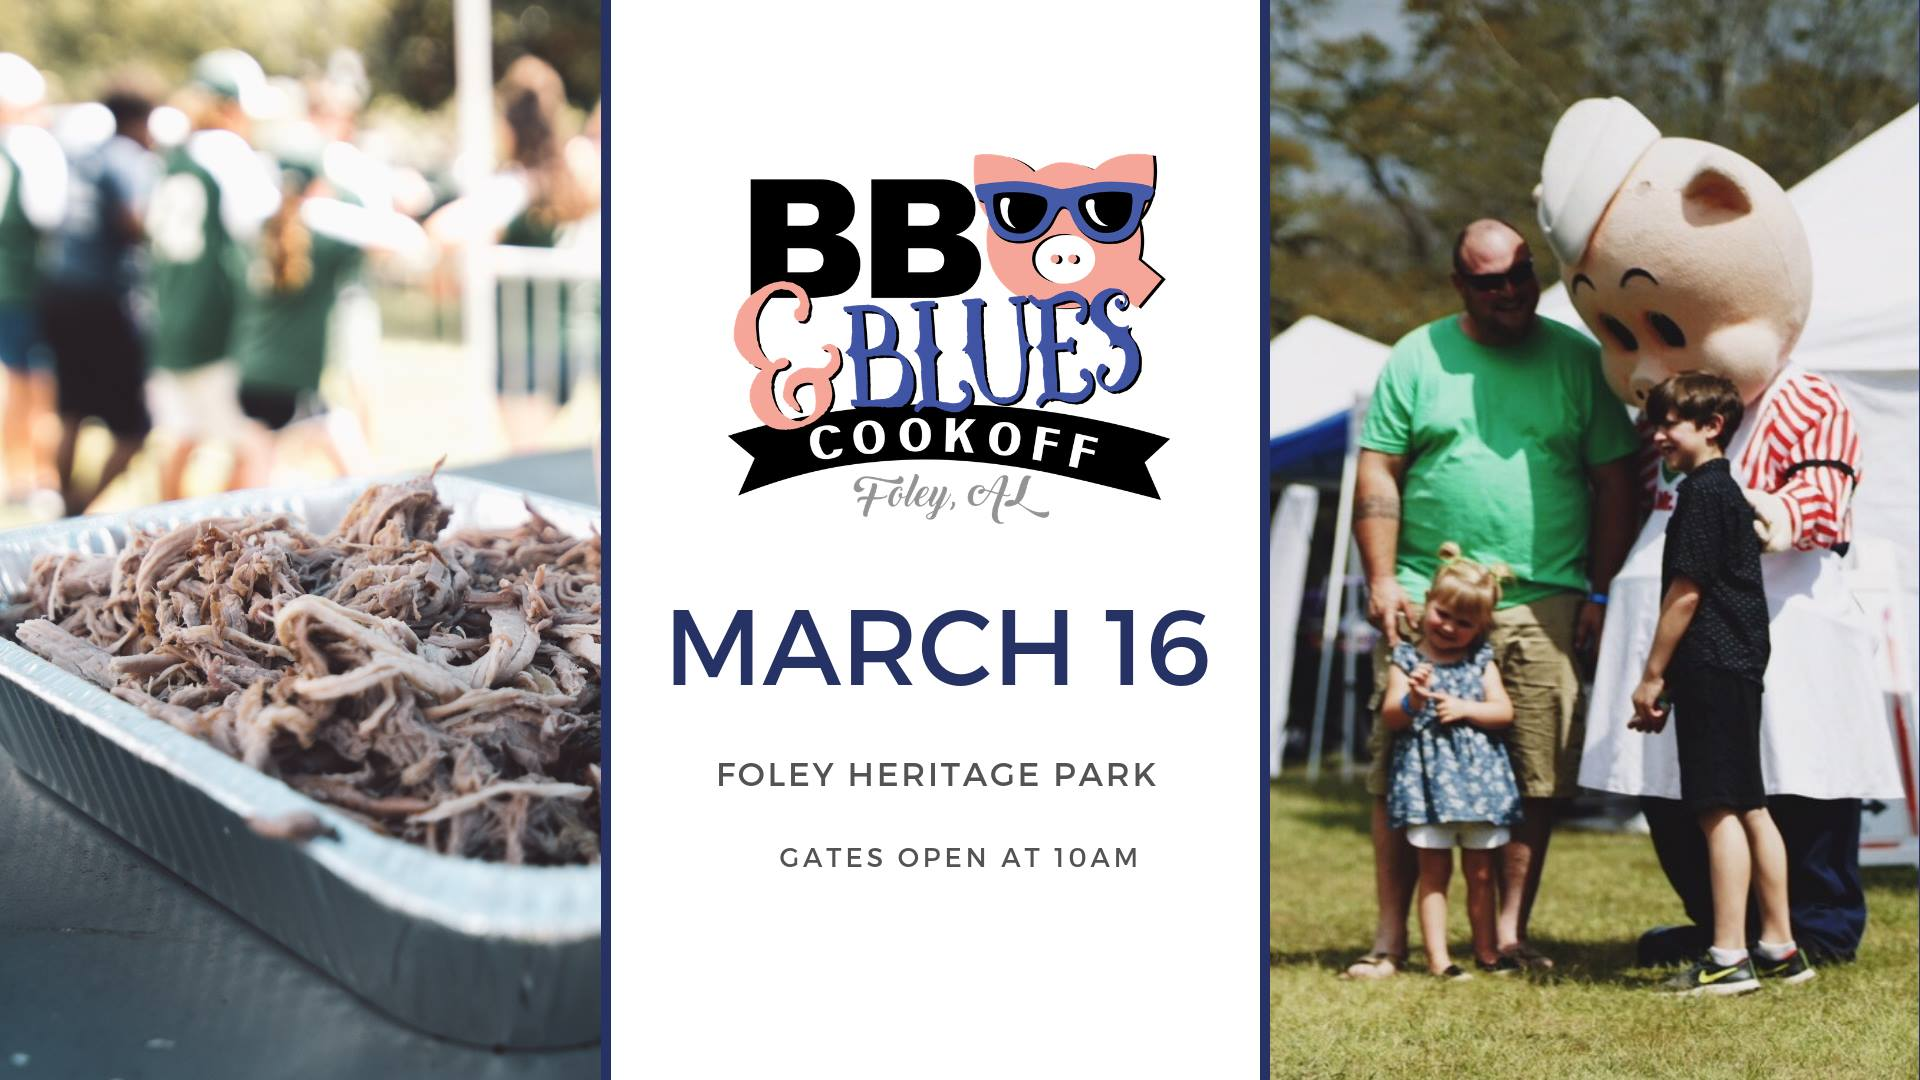 graphic banner with festival logo and image of bbq in pan